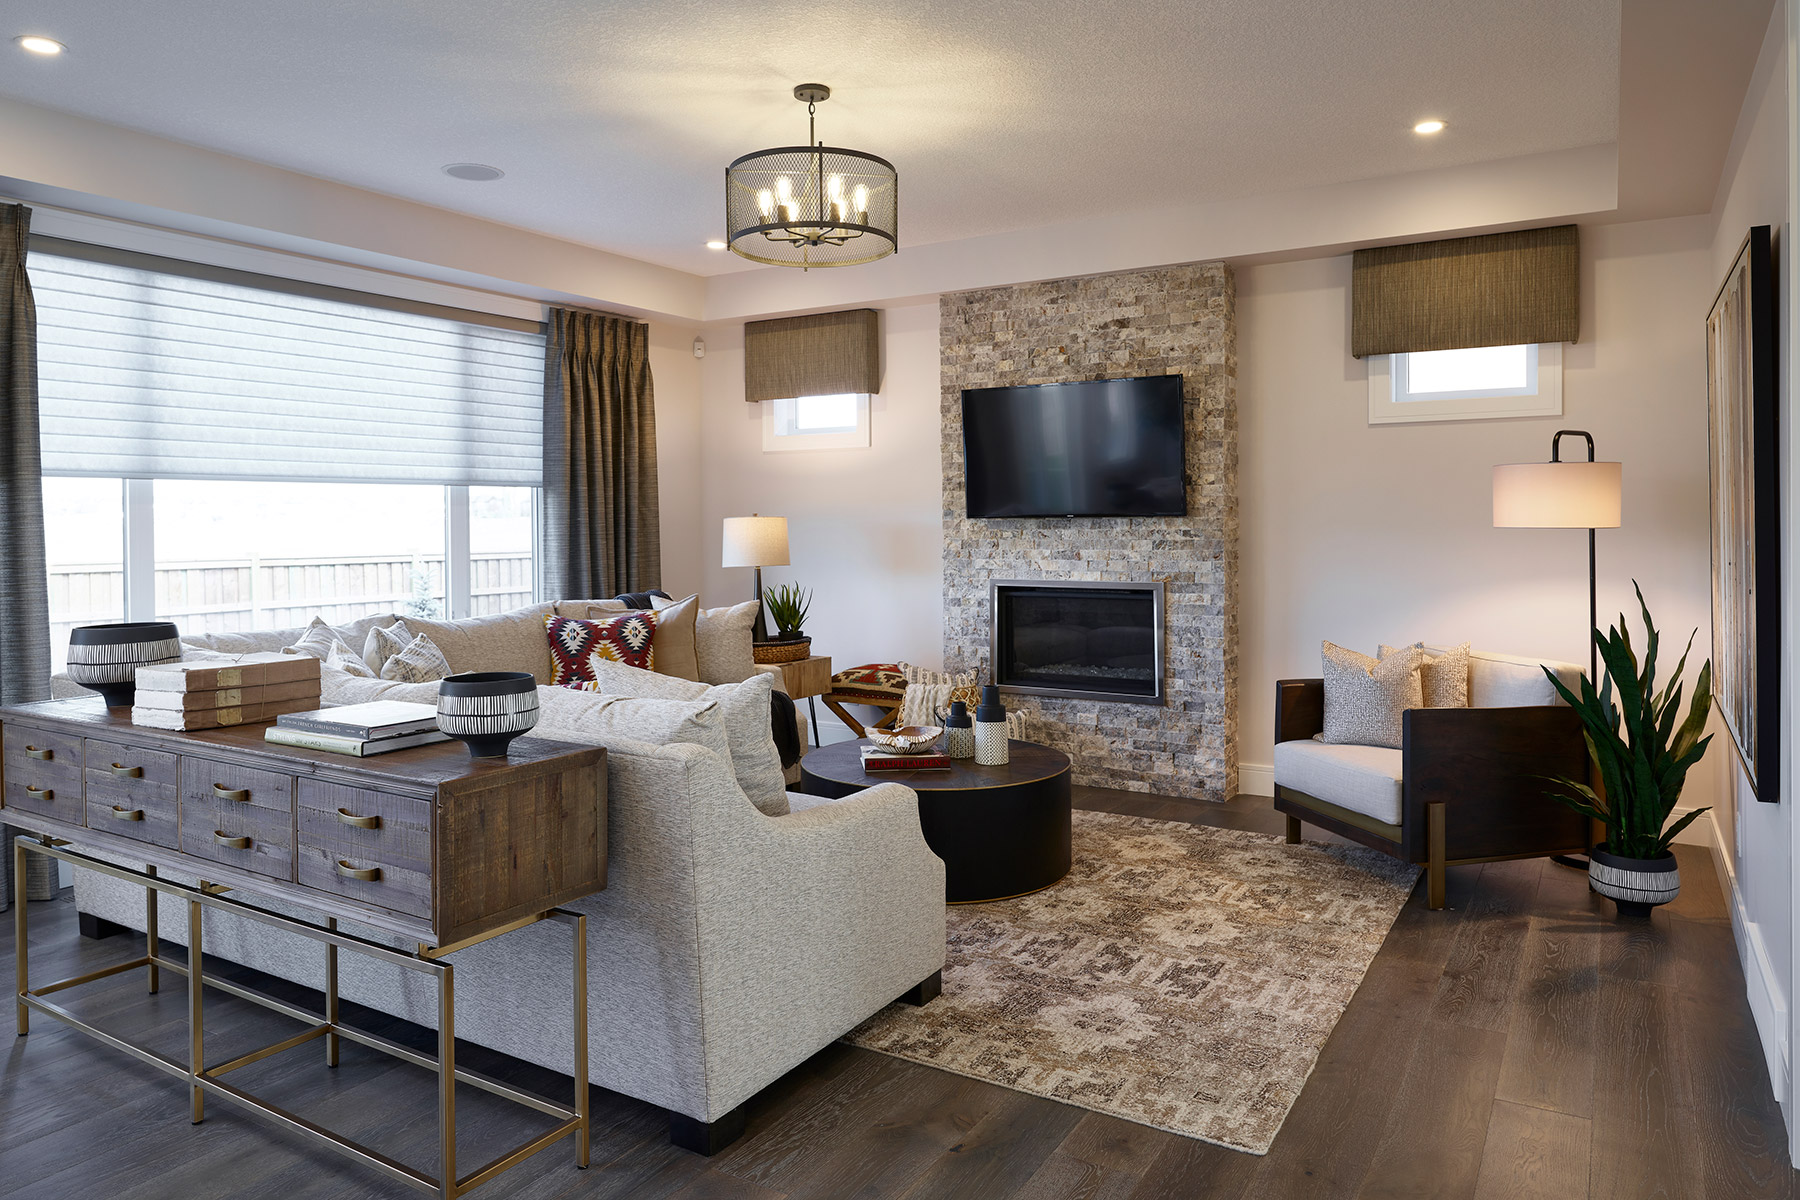 Jade Plan _calgary_yorkville_jade_1800x1200_gallery_10_centre at Yorkville in Calgary Alberta by Mattamy Homes